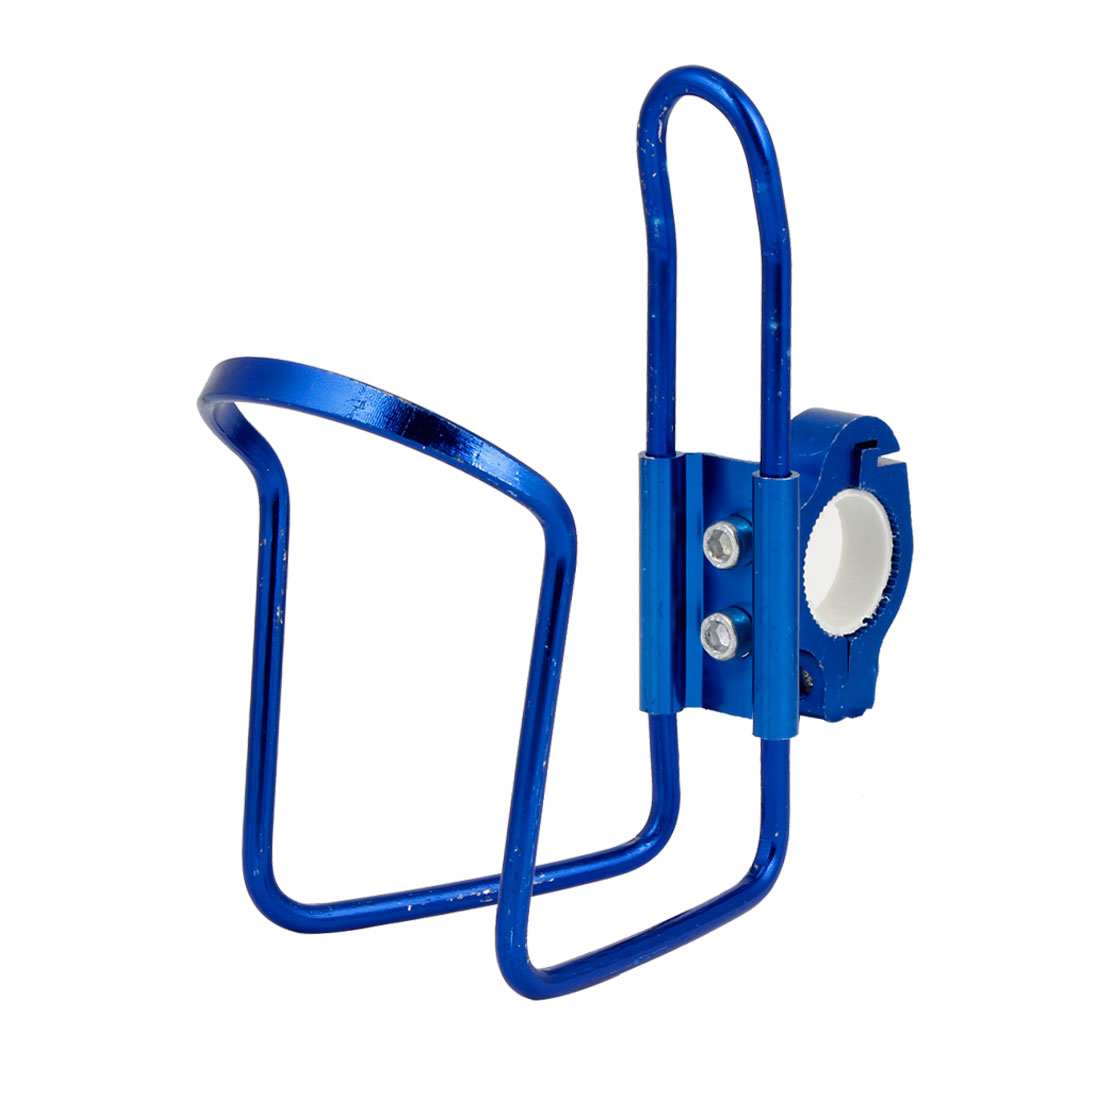 Mountain Bike Bicycles Royal Blue Aluminum Alloy Water Bottle Cup Rack Holder